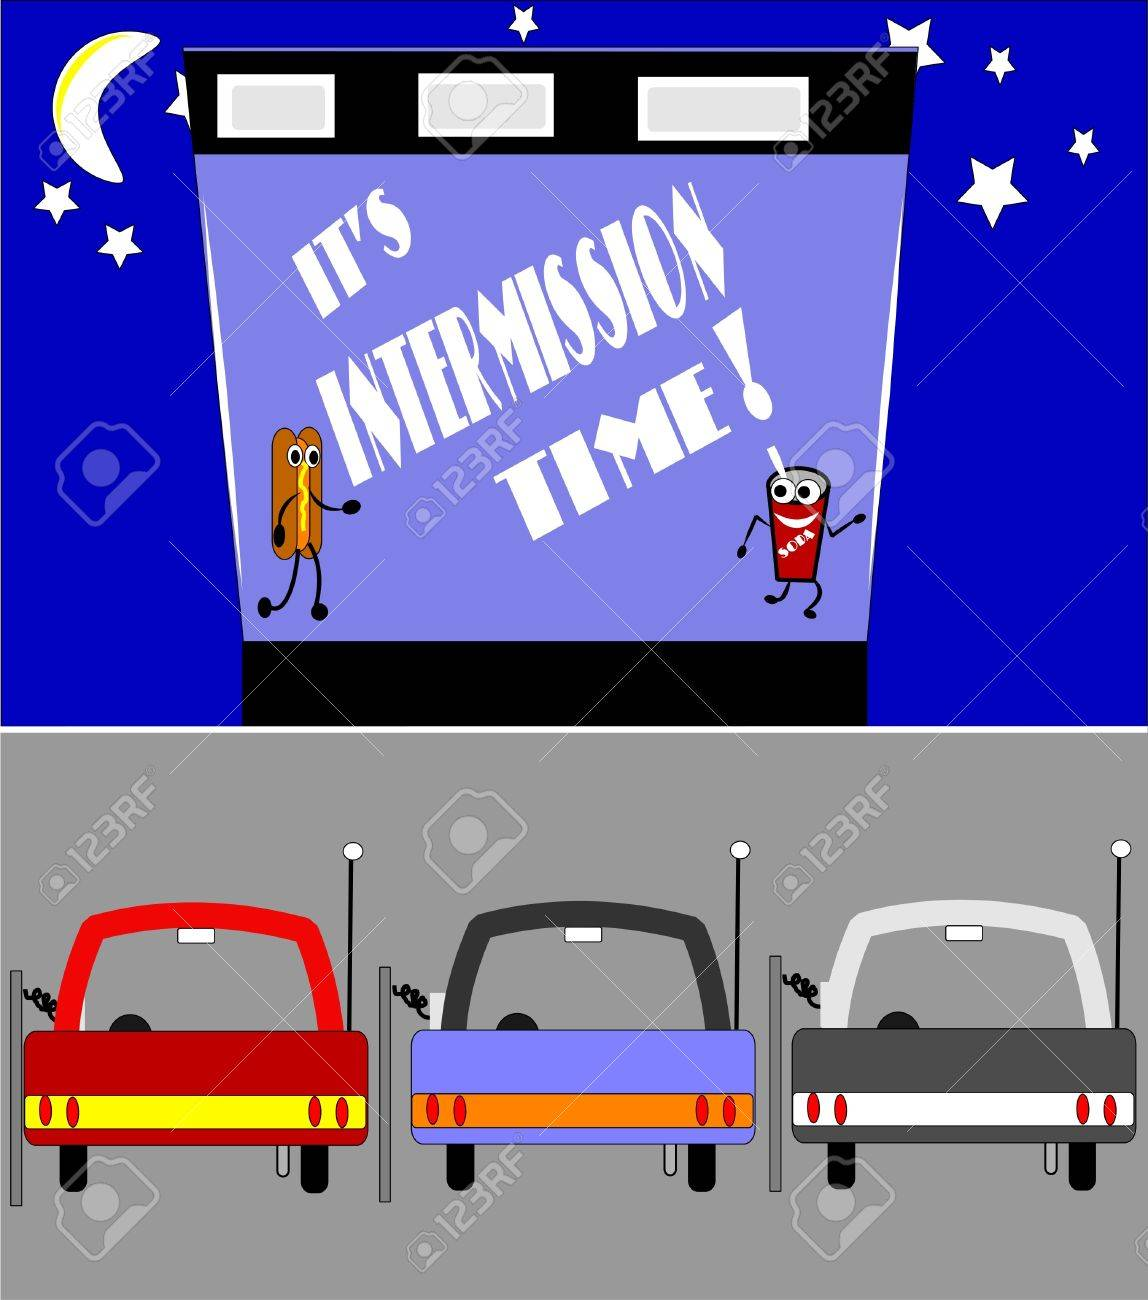 Retro Drive In Intermission Time Royalty Free Cliparts Vectors And Stock Illustration Image 9930367